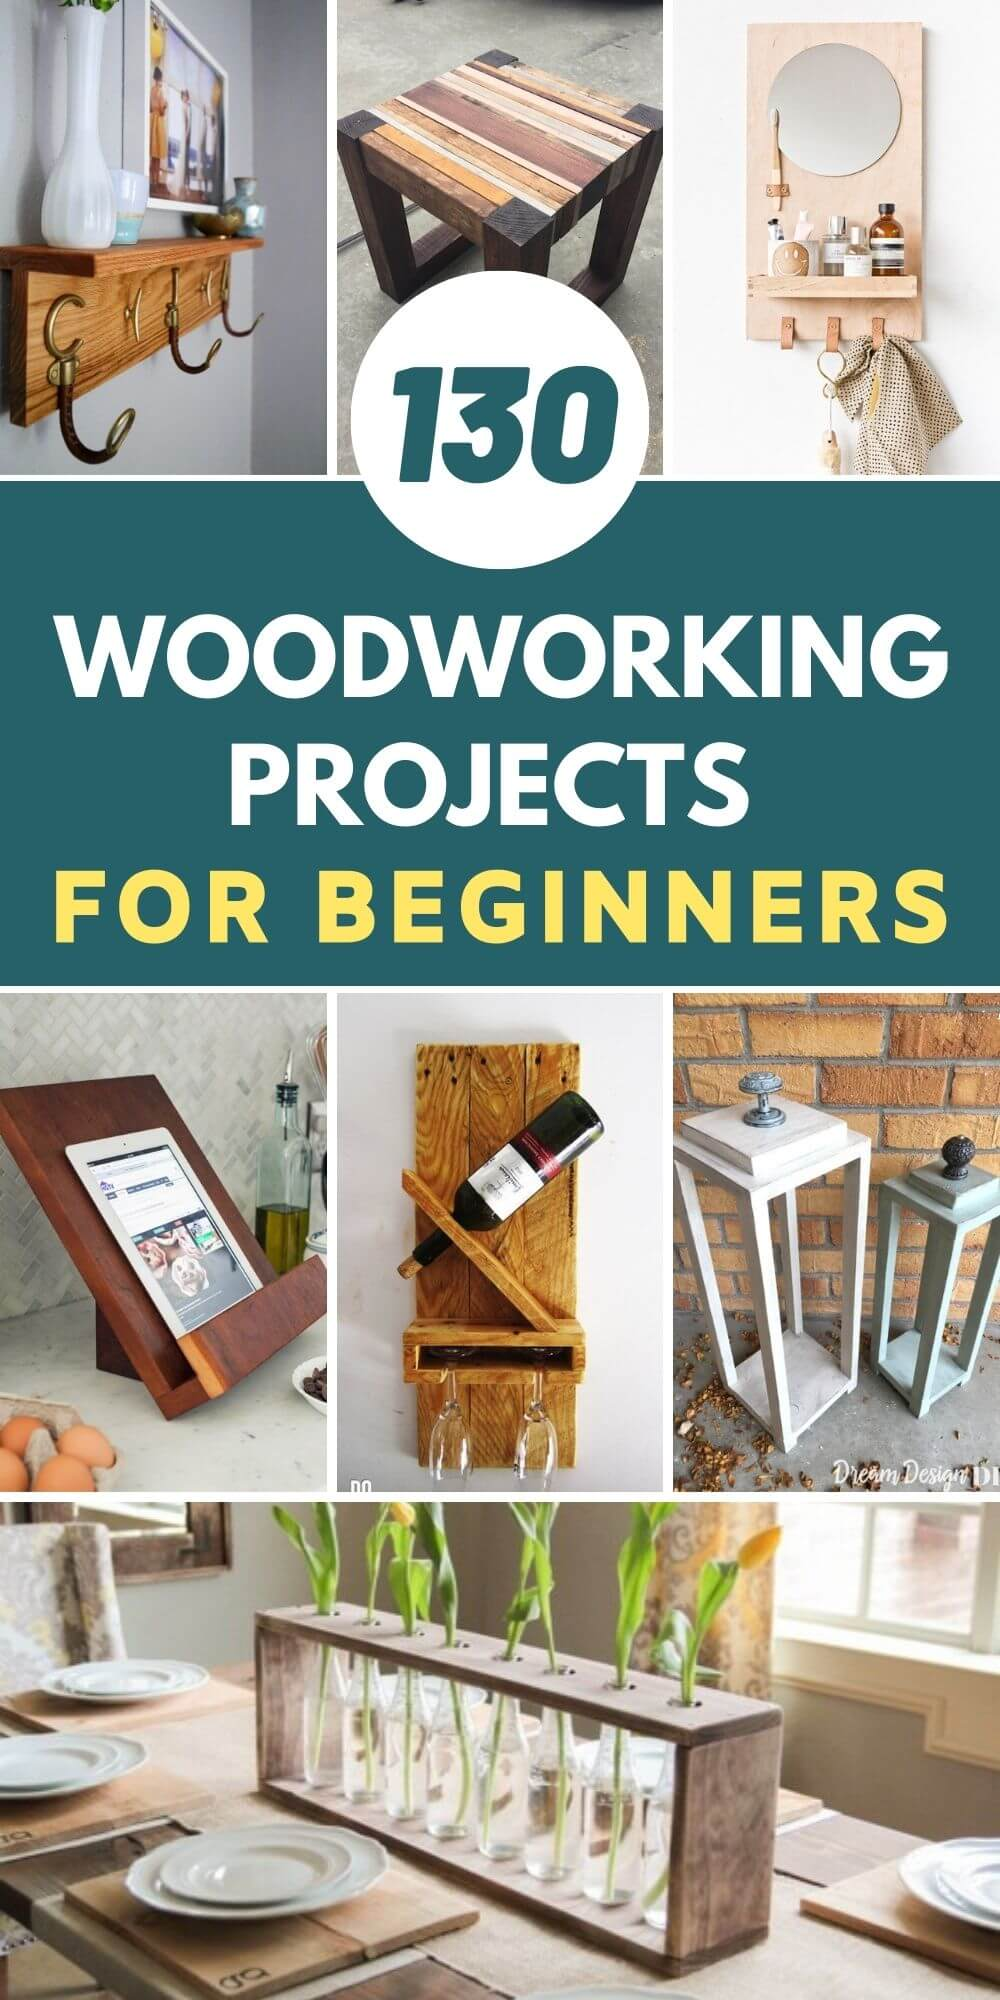 130 Best DIY Woodworking Projects For Beginners